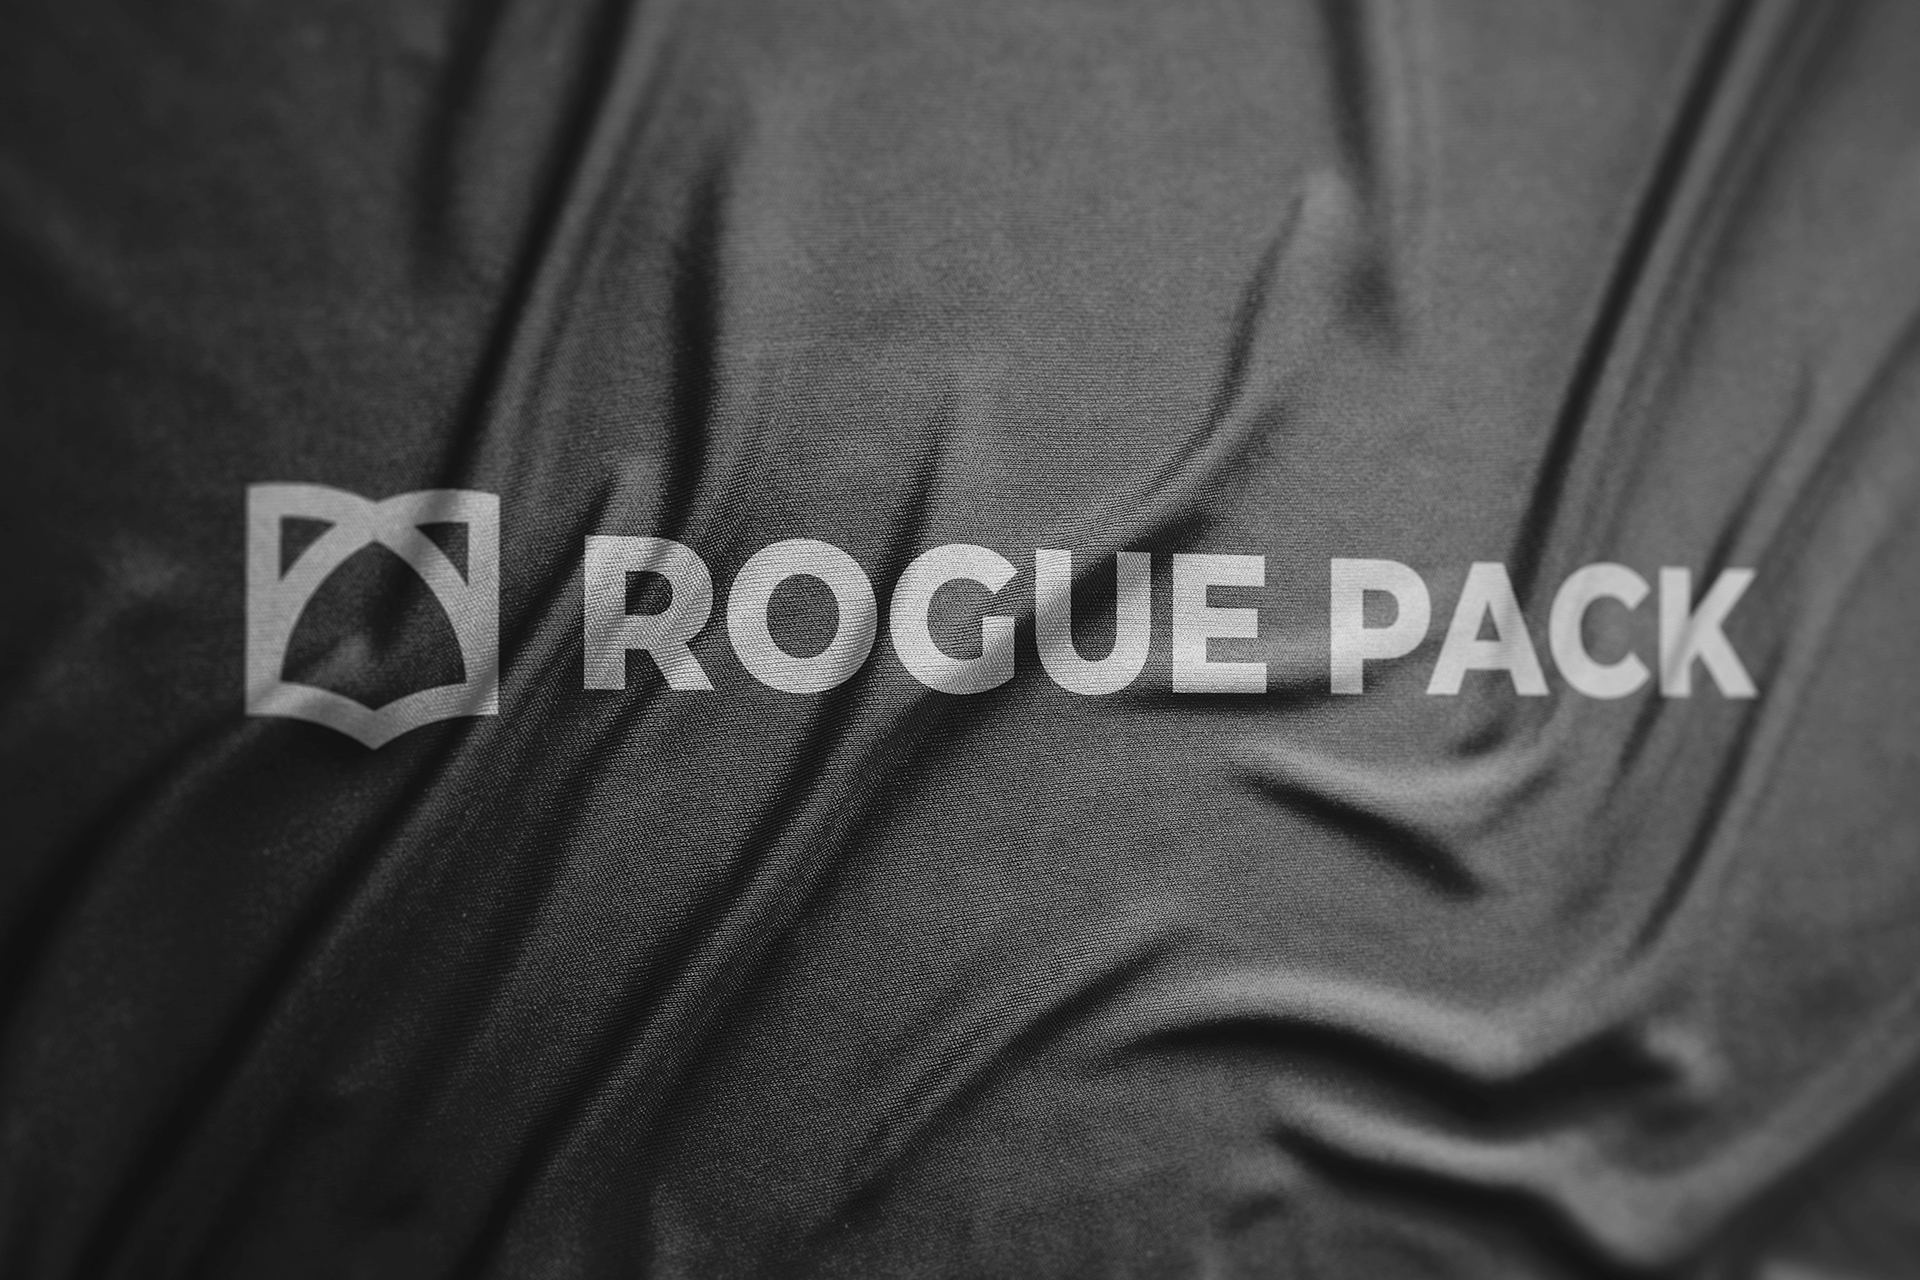 Rogue Pack flag